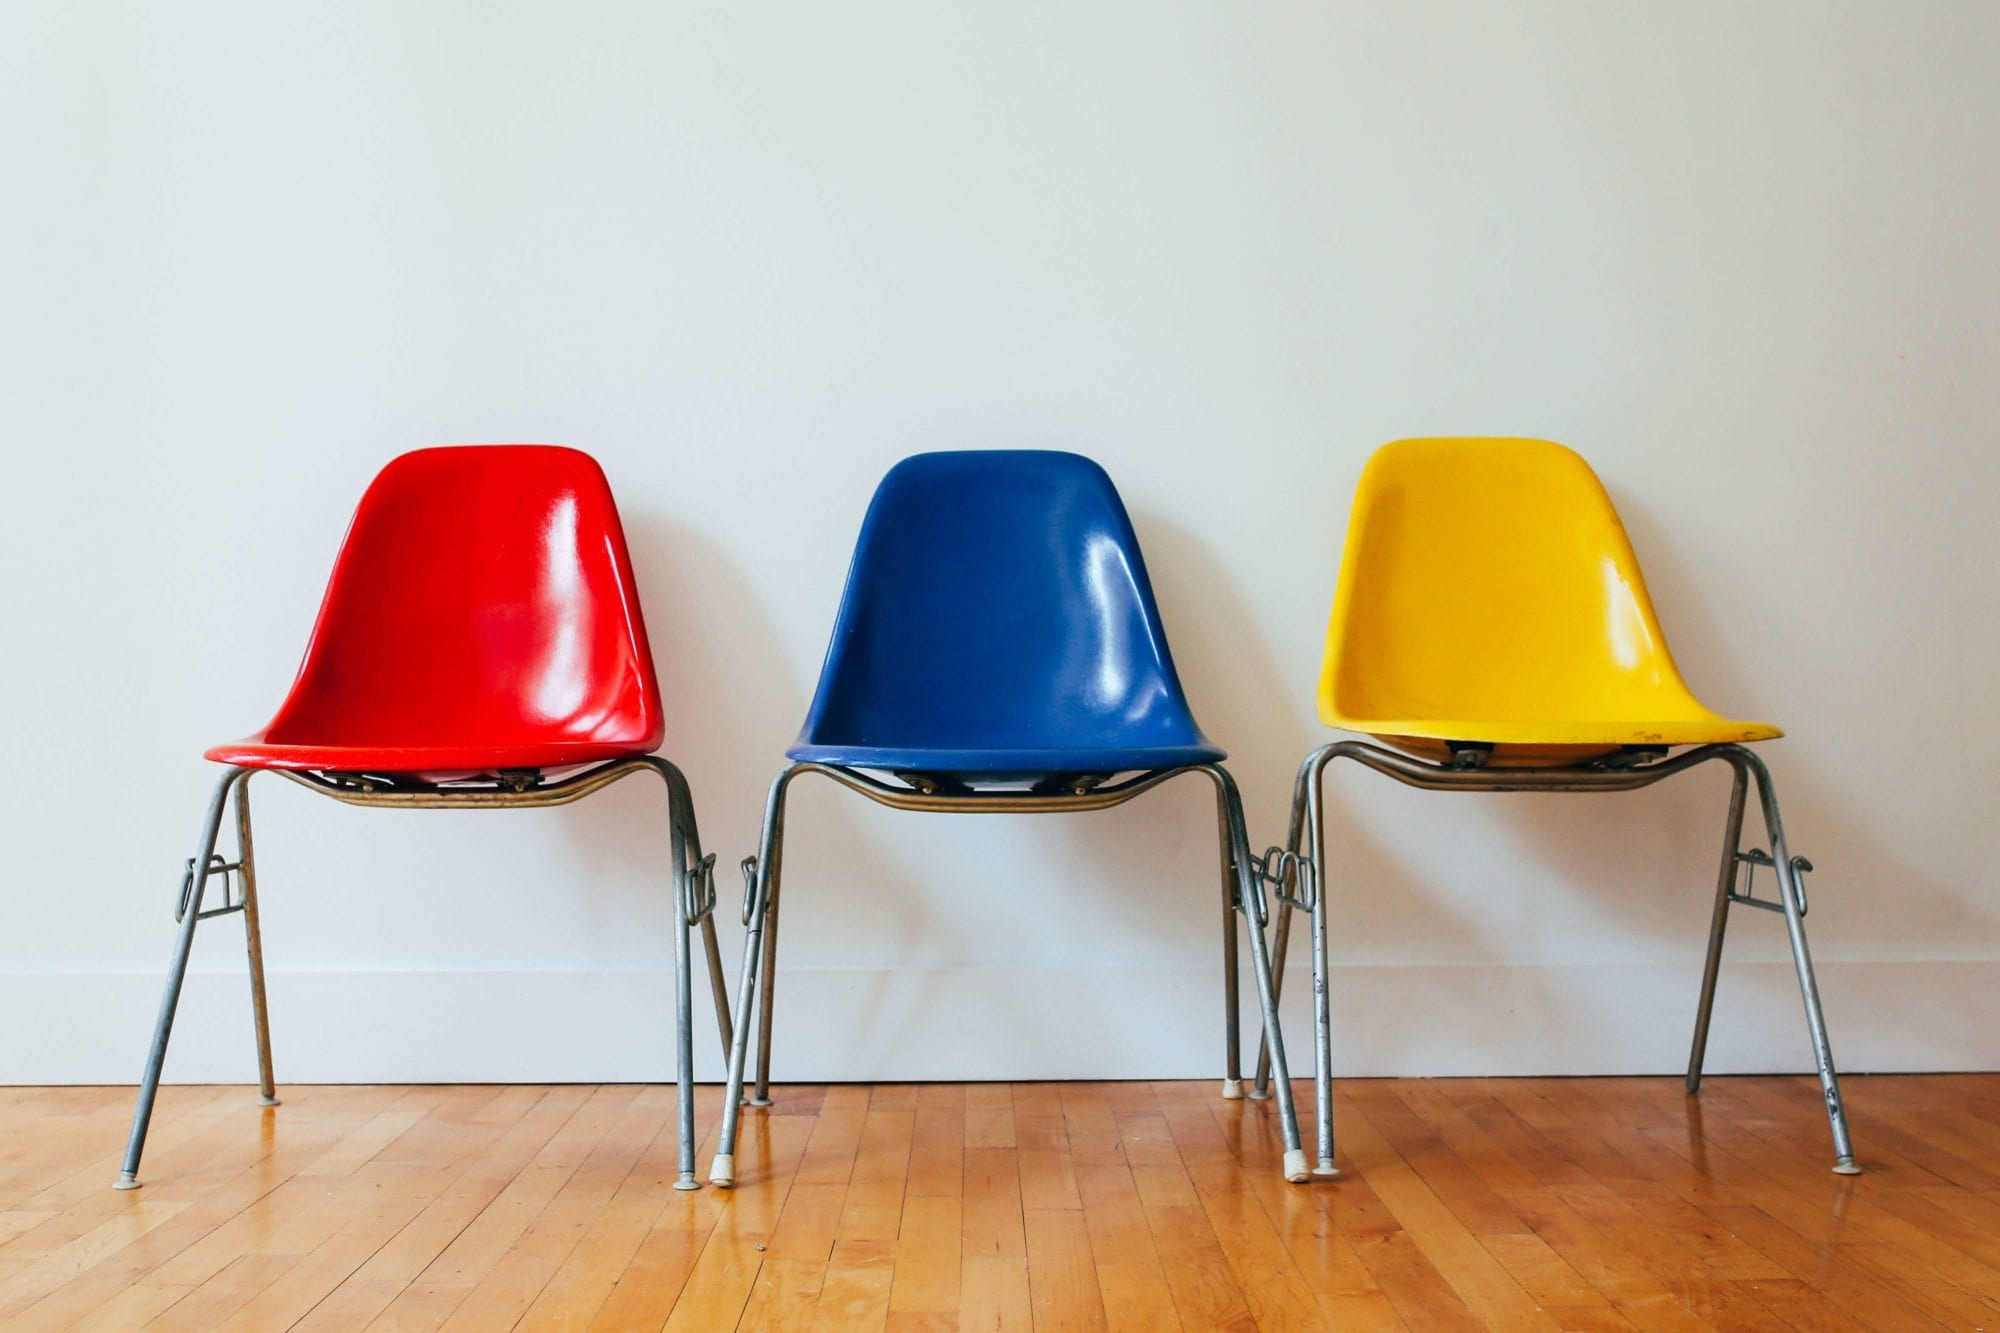 Hiring strategies for startups: 5 tips to recruit your first hire